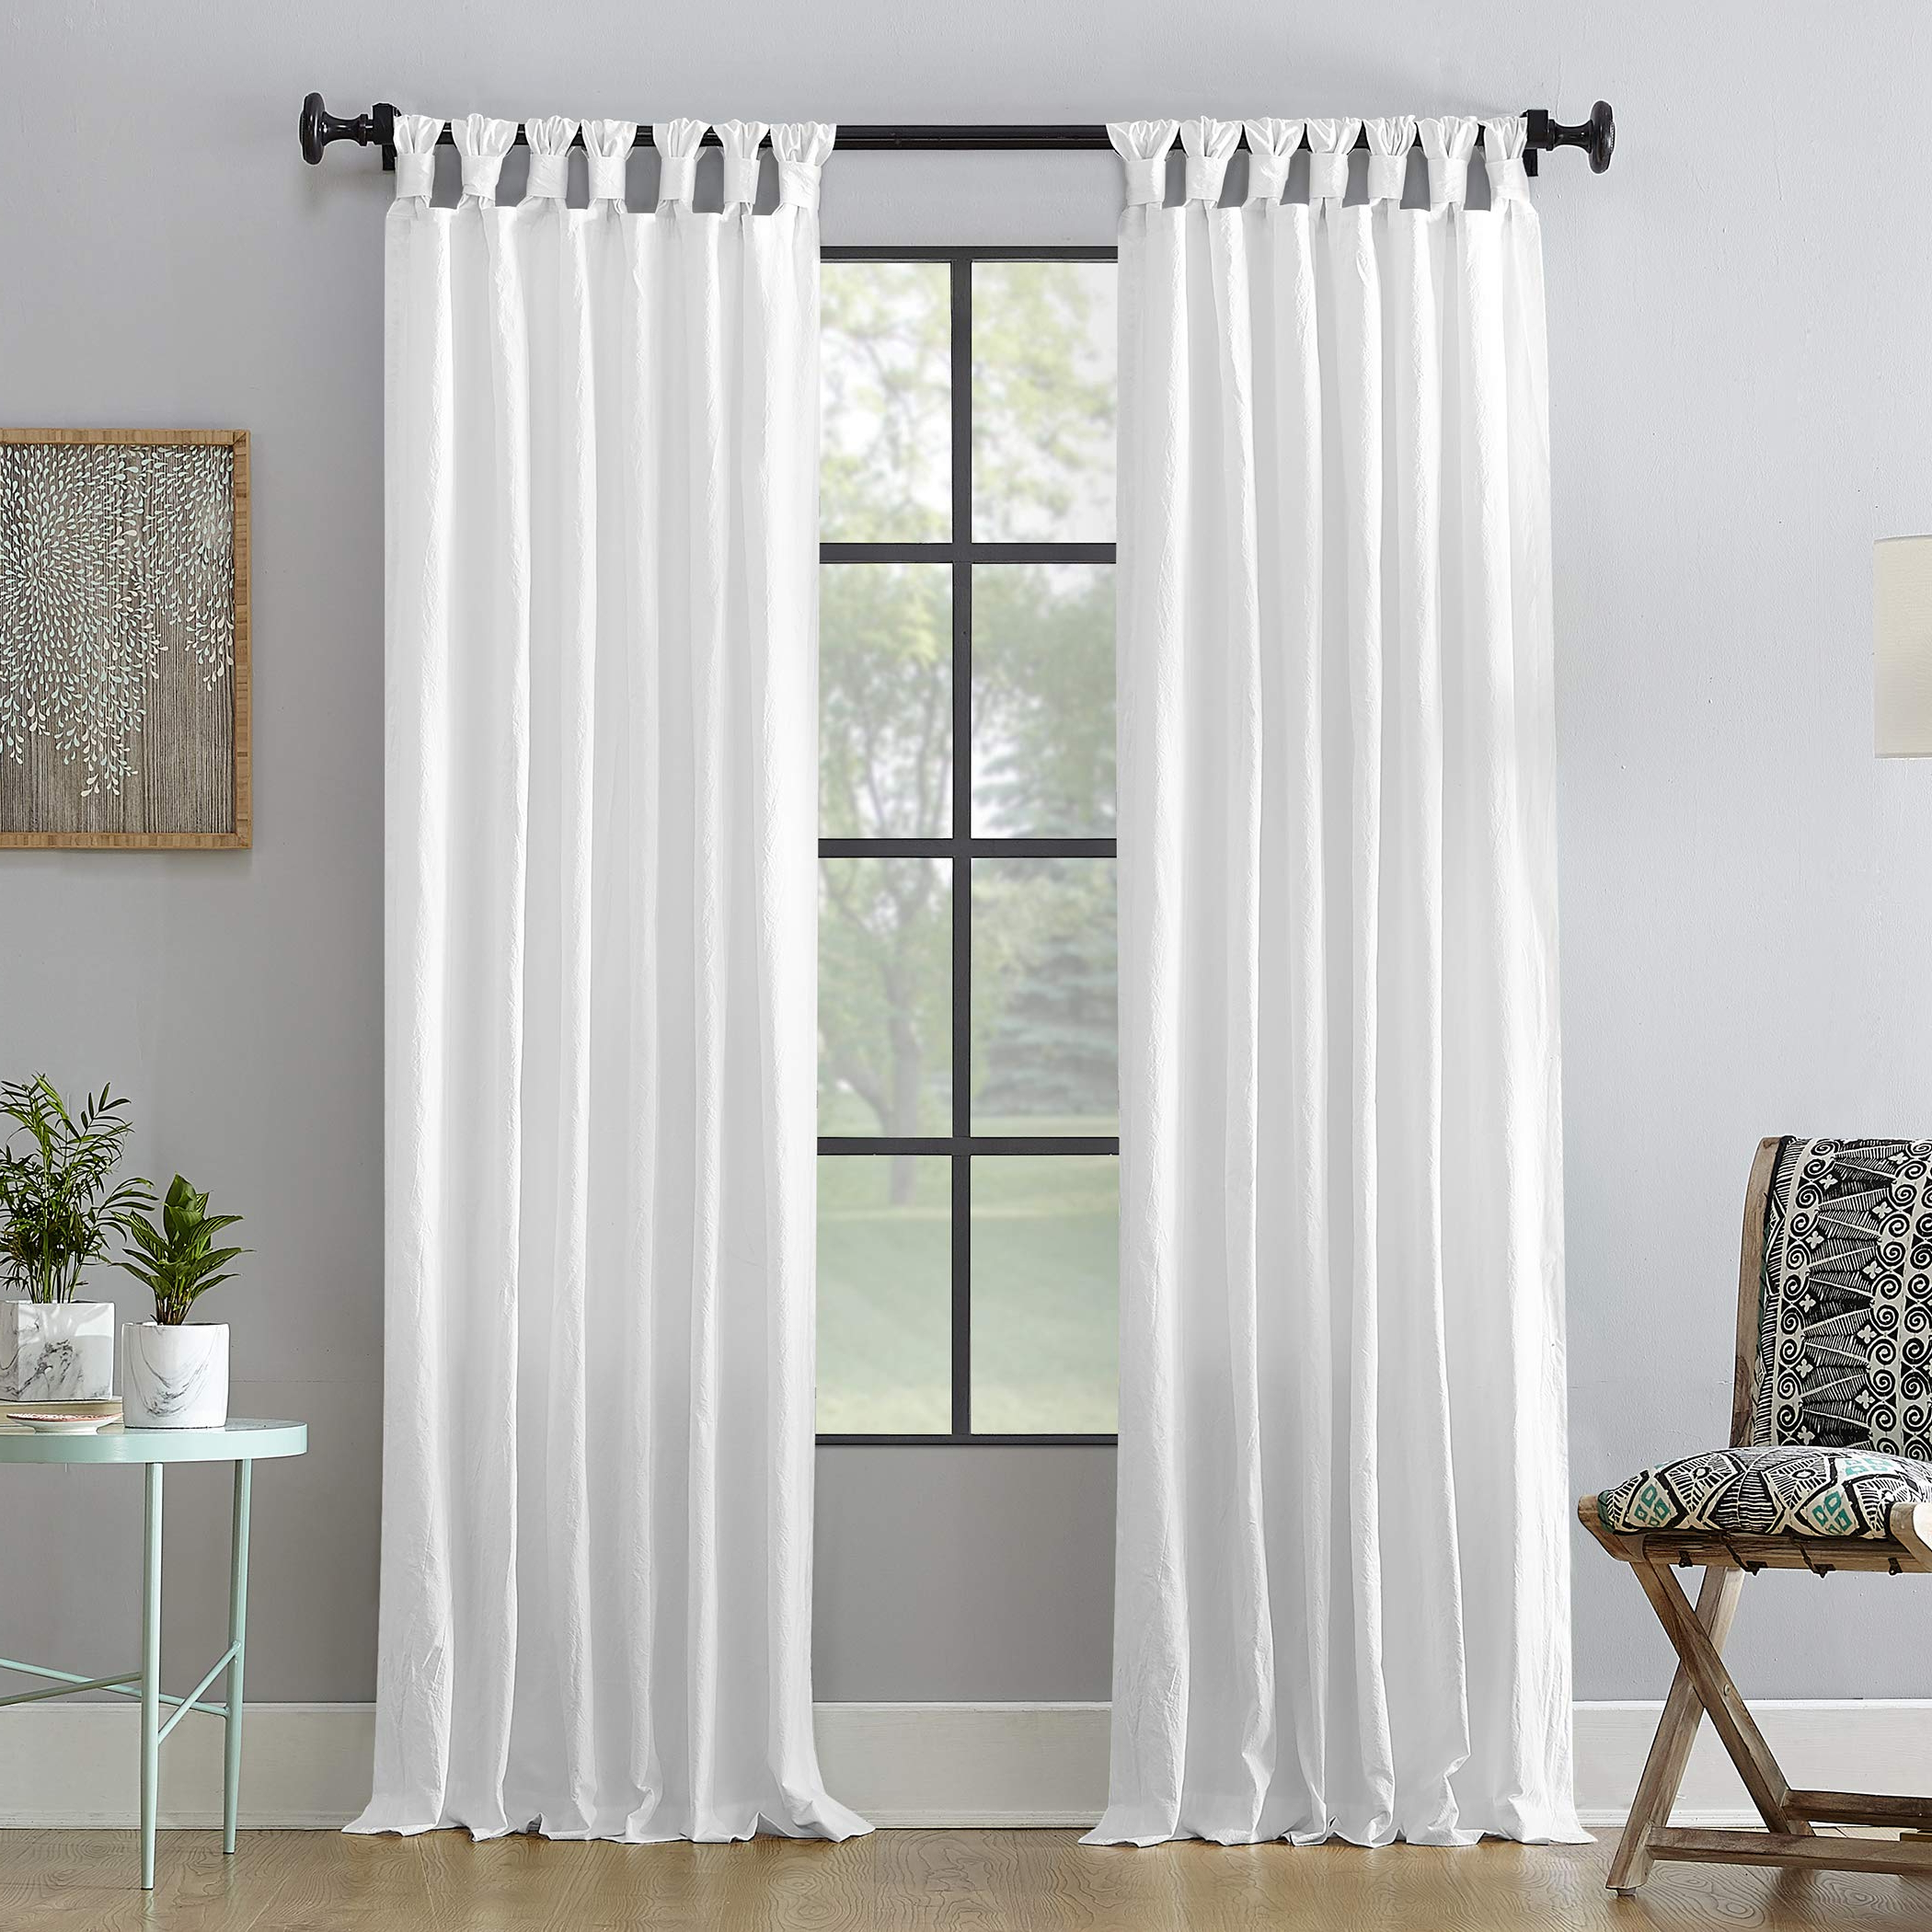 "[%Details About Archaeo Washed 100% Cotton Twist Tab Curtain 52"" X 63"" White In Well Known Archaeo Slub Textured Linen Blend Grommet Top Curtains